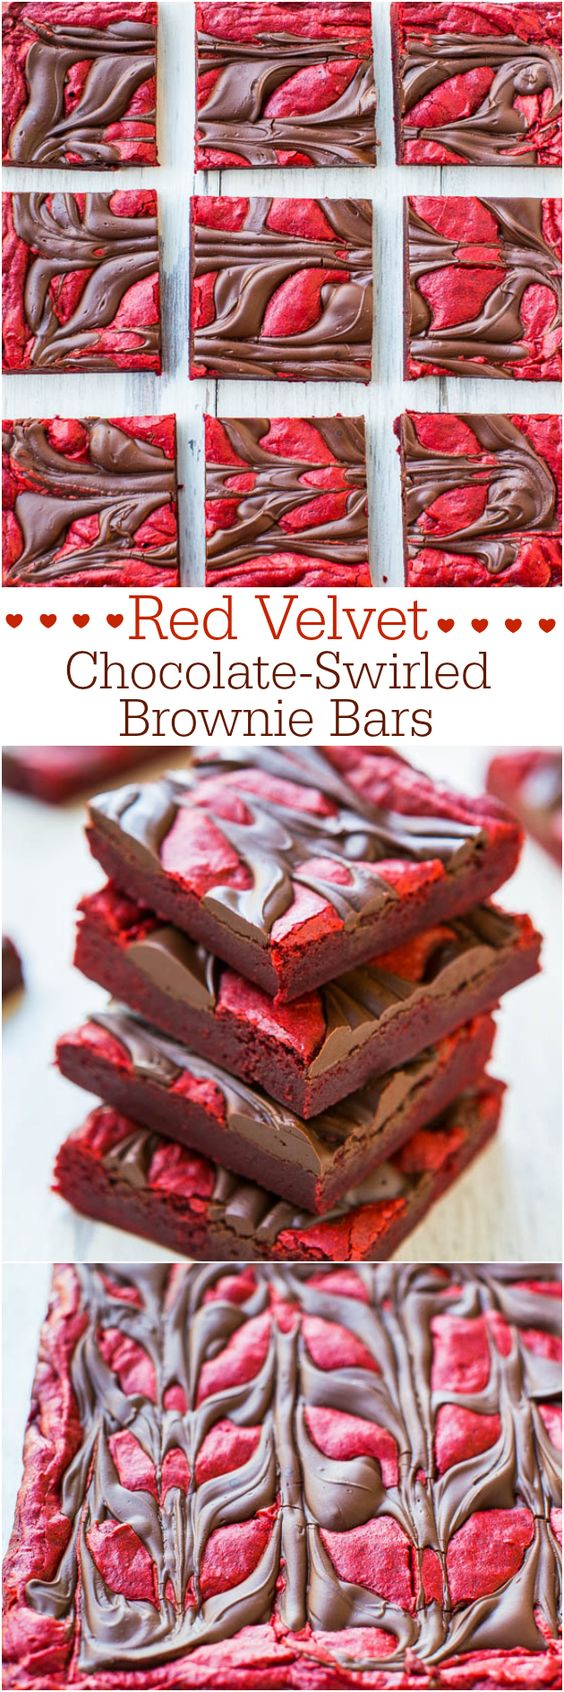 Red Velvet Chocolate Swirled Brownie Bars.